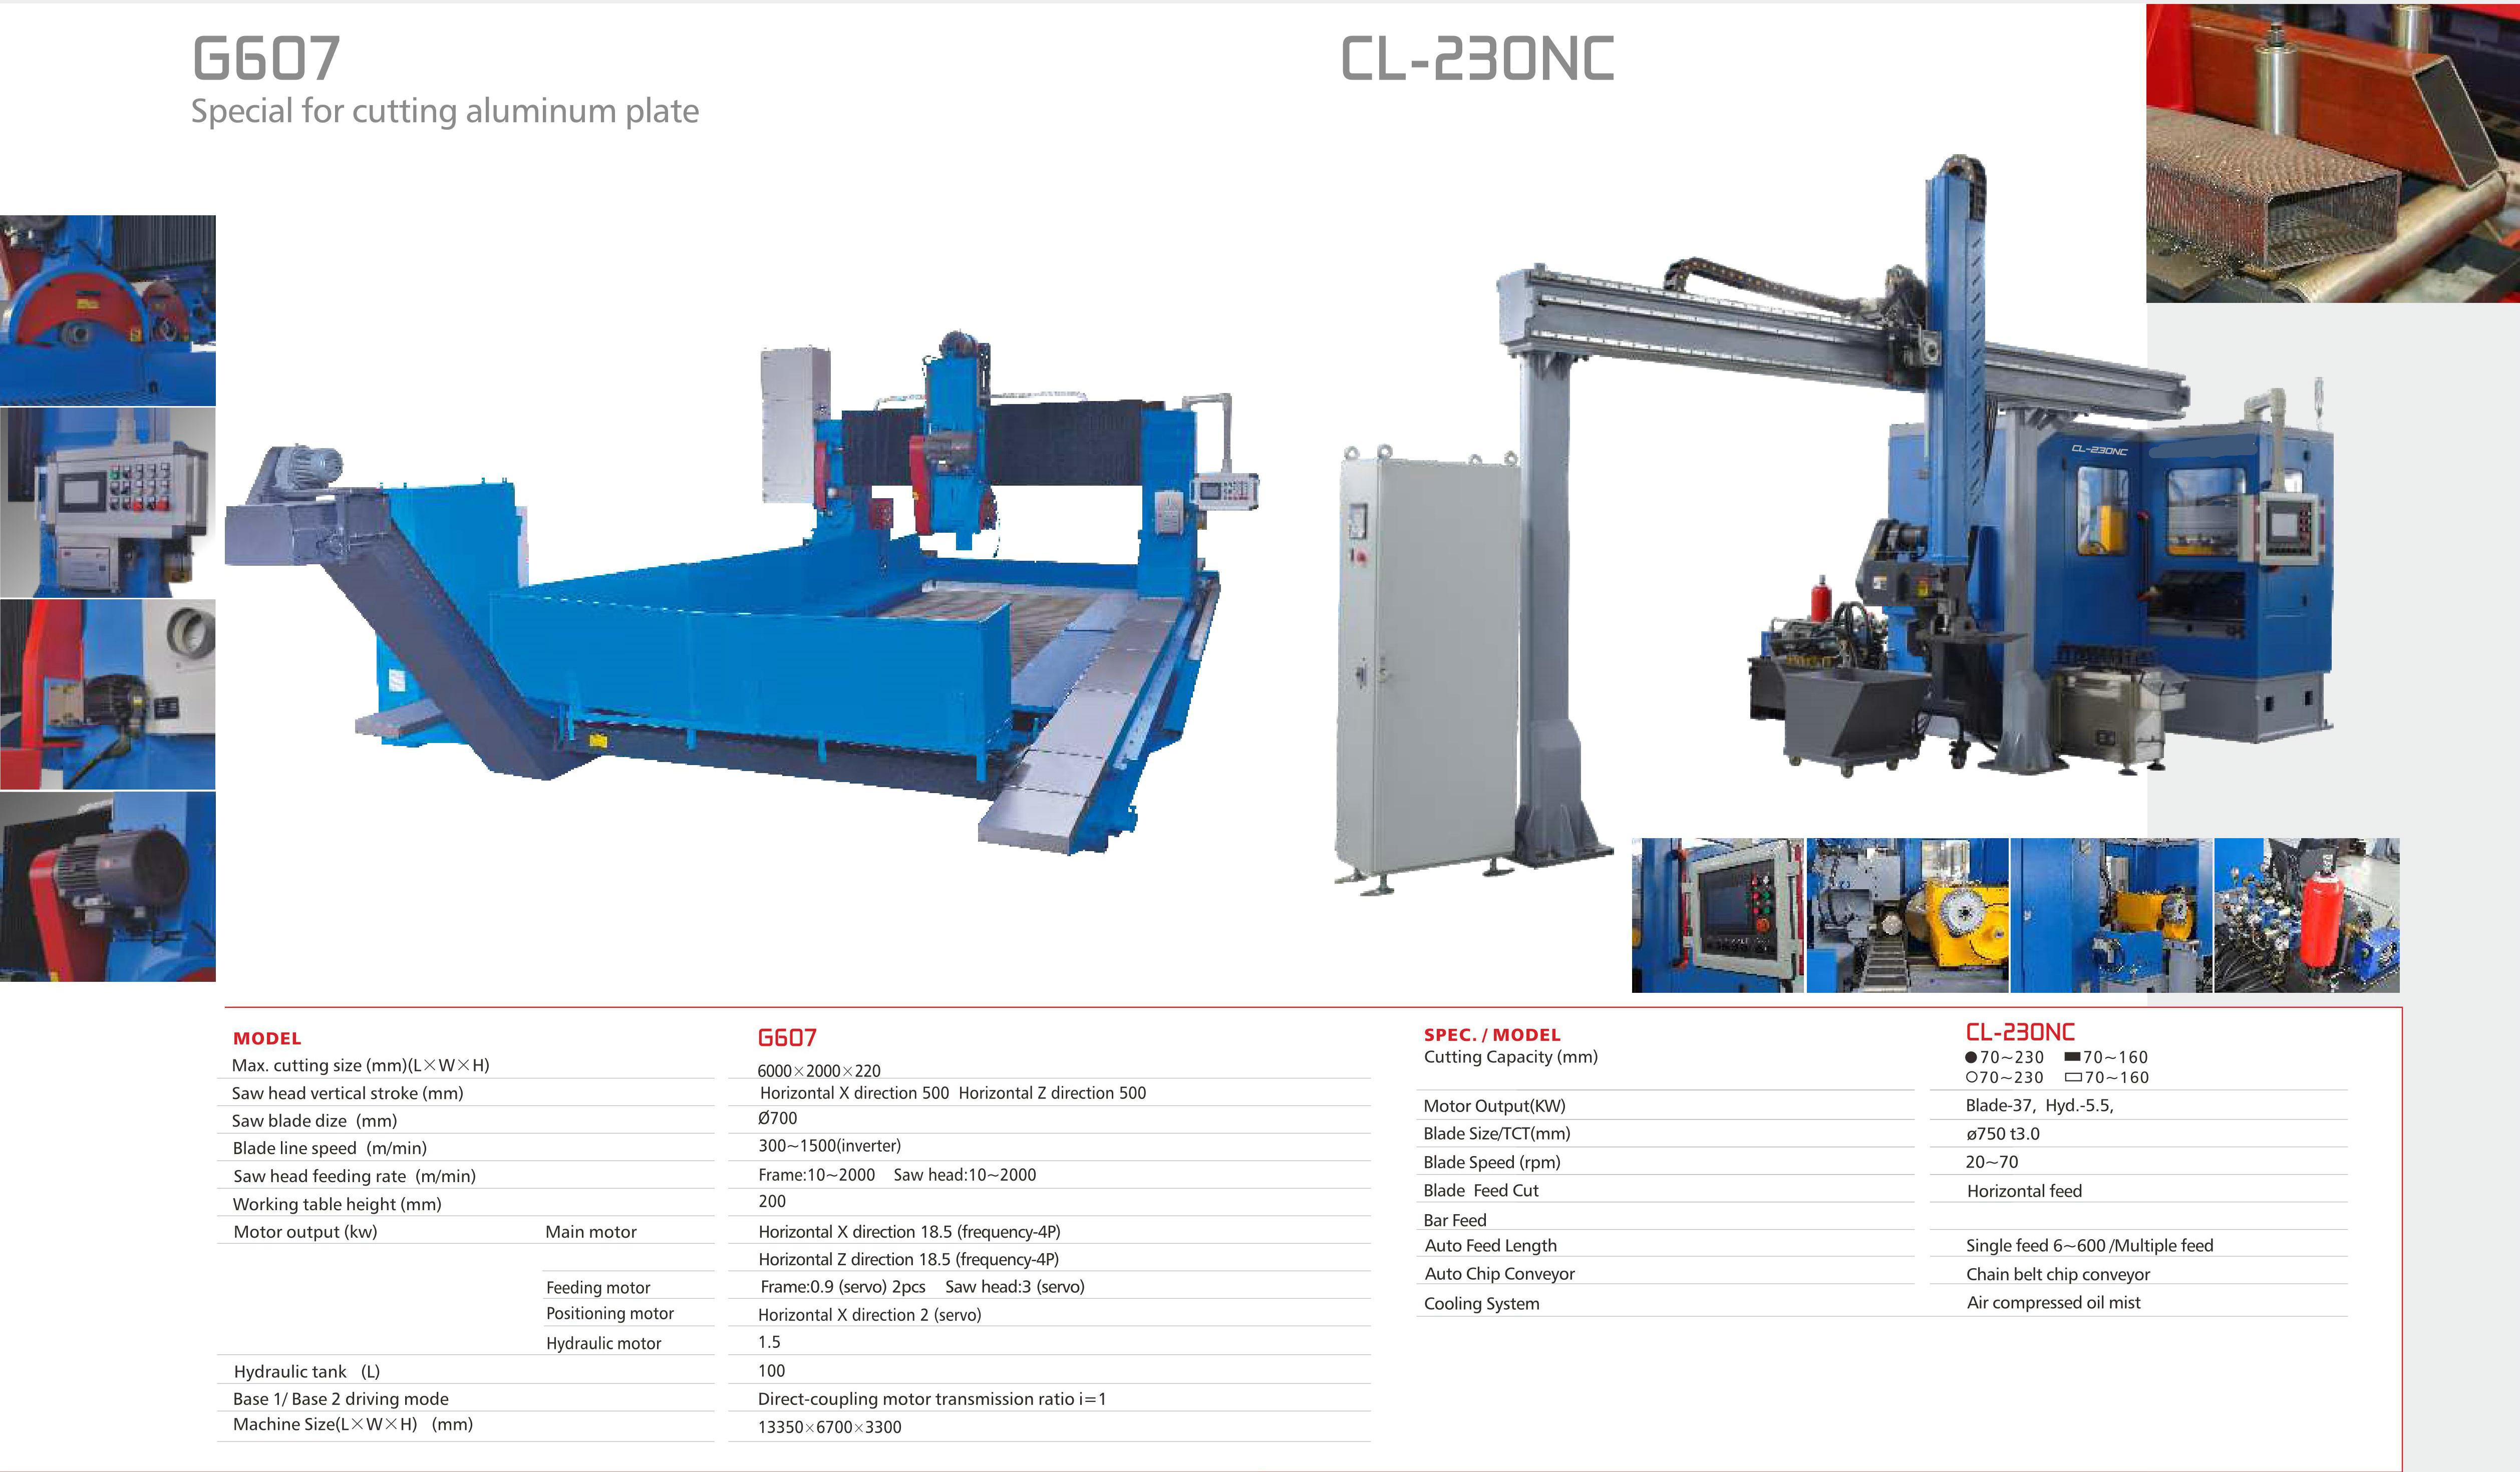 VERTICAL BLOCK/PLATE BAND SAWING MACHINE G607-CL230NC